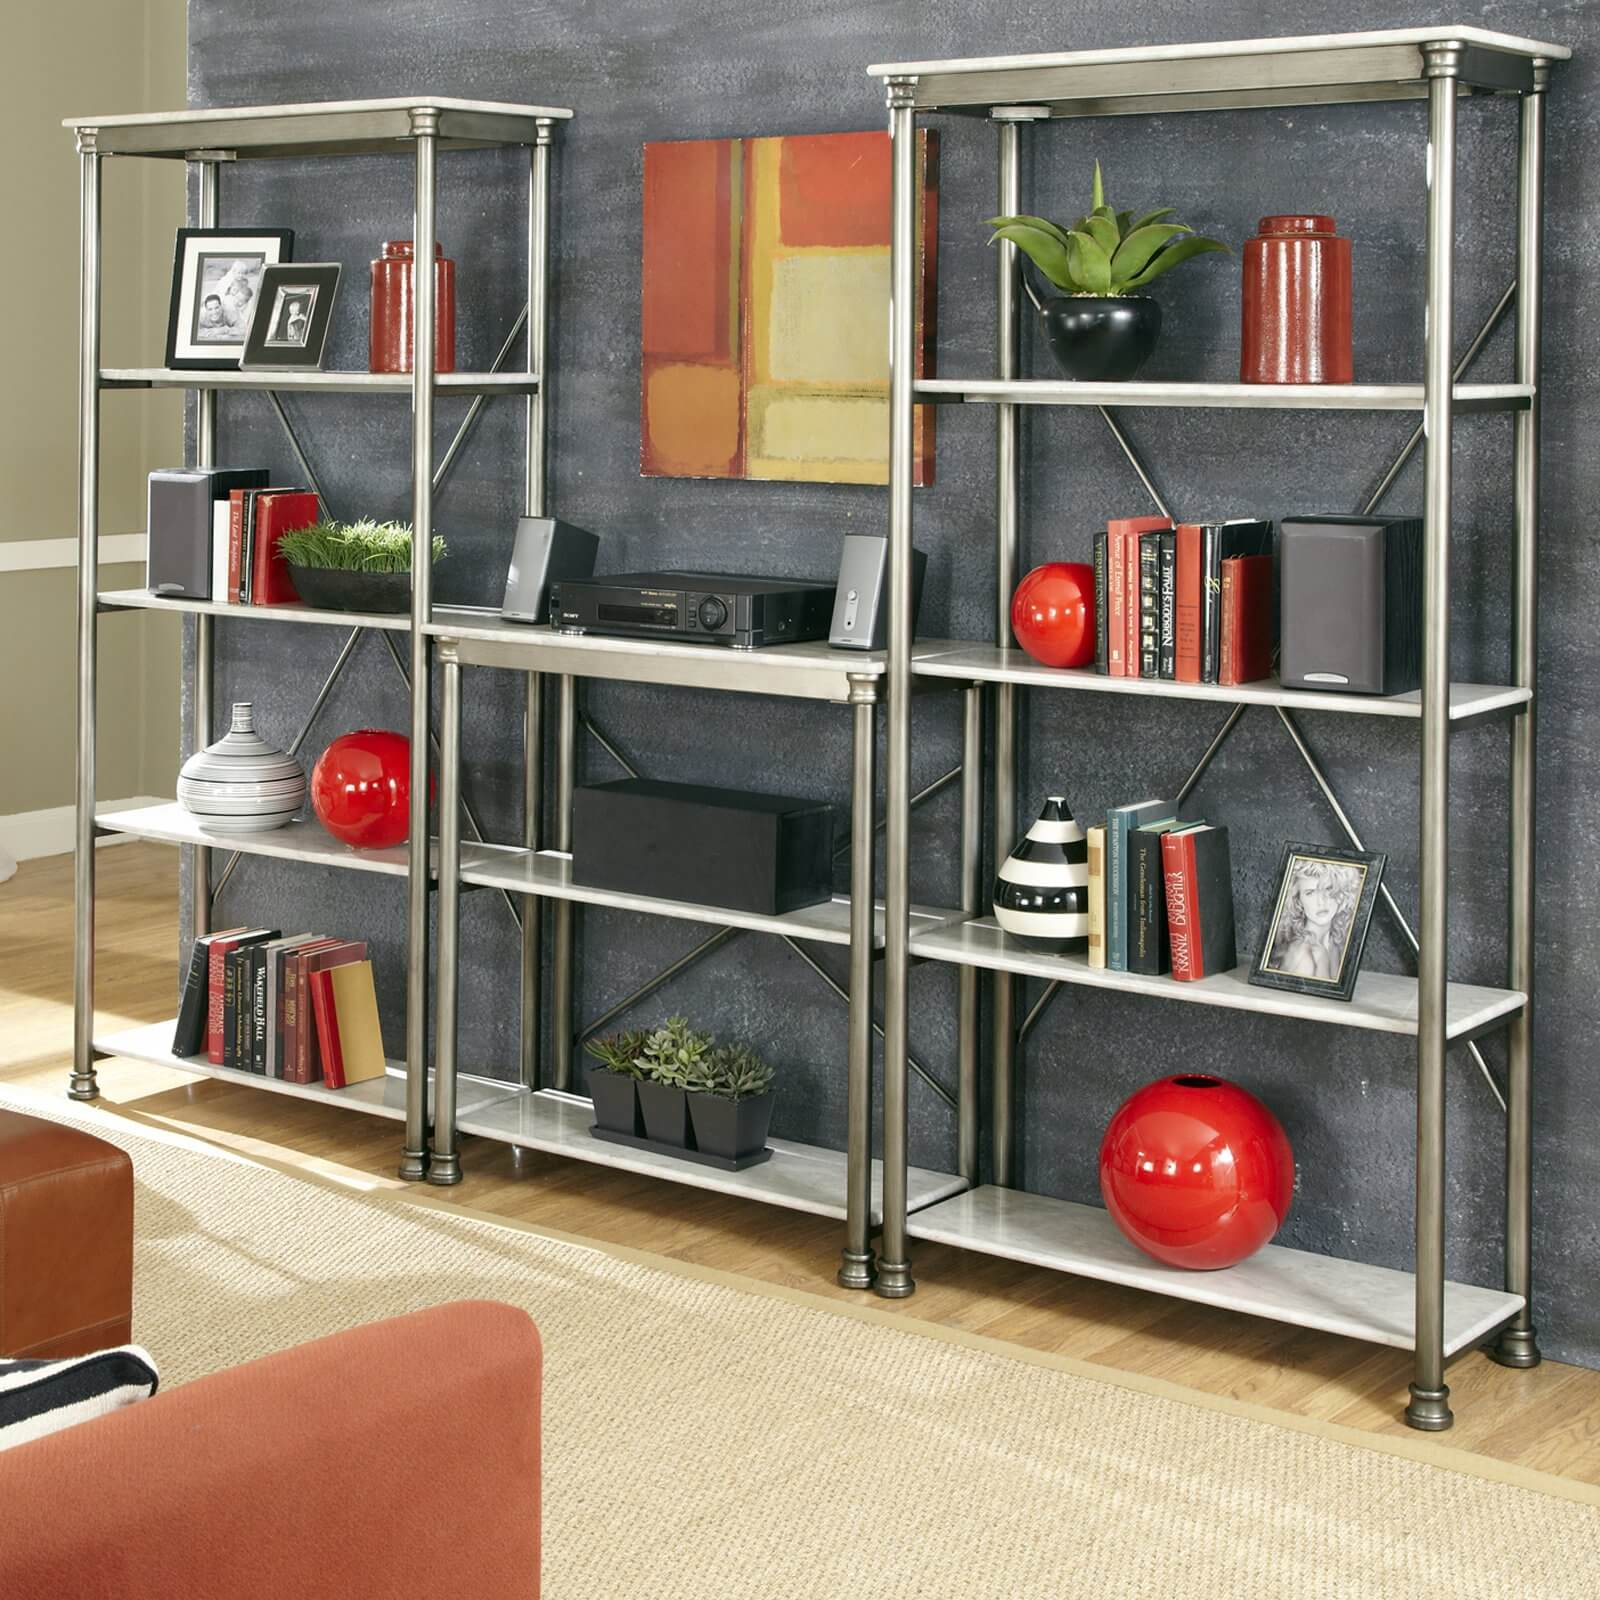 Metal construction allows for lighter weight designs, more shape options, and a look that easily compliments modern or industrial design. Often bookcases with metal frames will still use wood or, in this case, marble shelving.